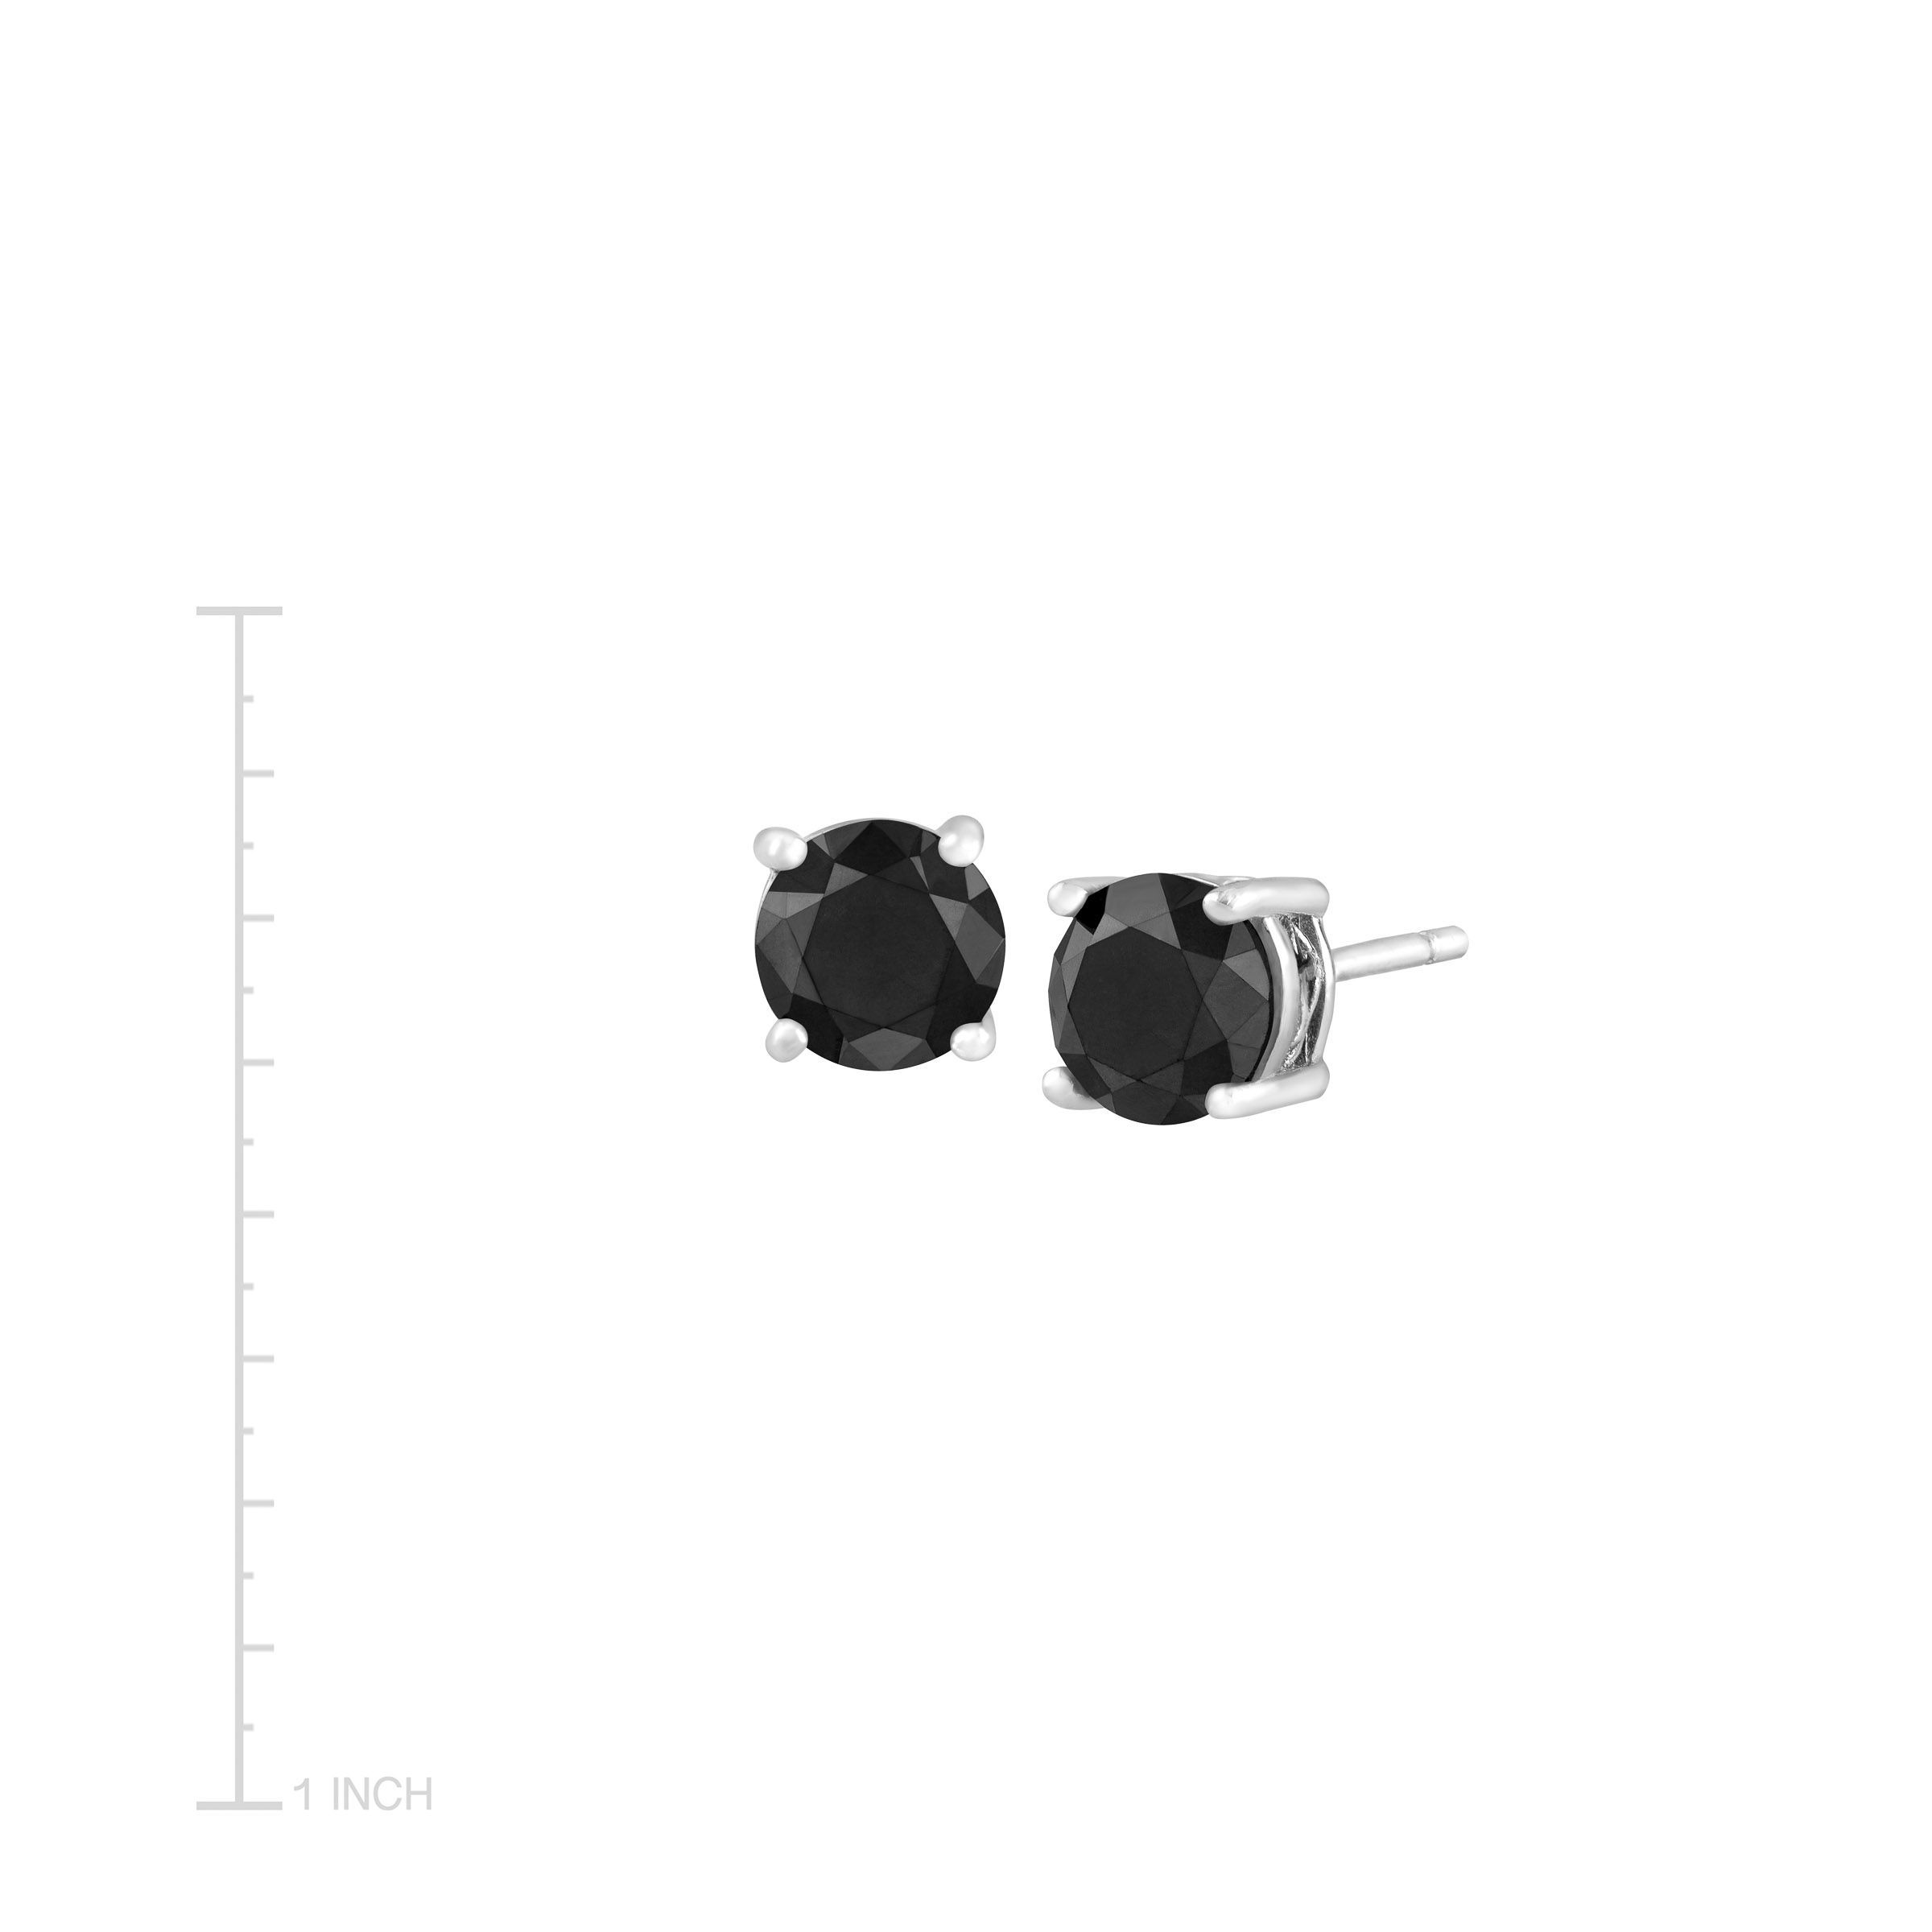 2 Ct Black Diamond Stud Earrings In Sterling Silver